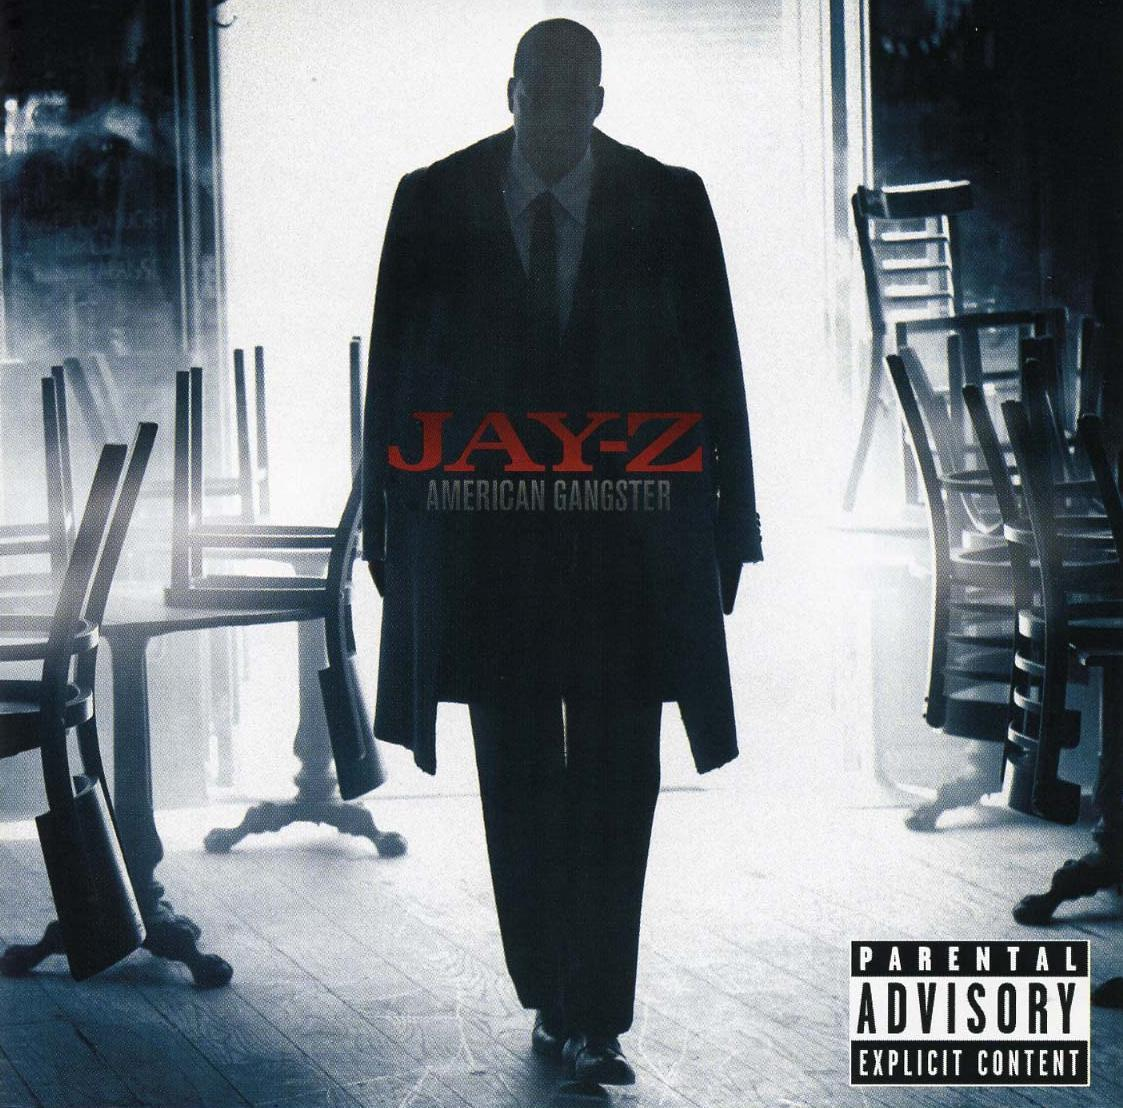 FIVE YEARS AGO TODAY |11/6/07| Jay-Z released his tenth album, American Gangster, on Roc-A-Fella/Def Jam Records.